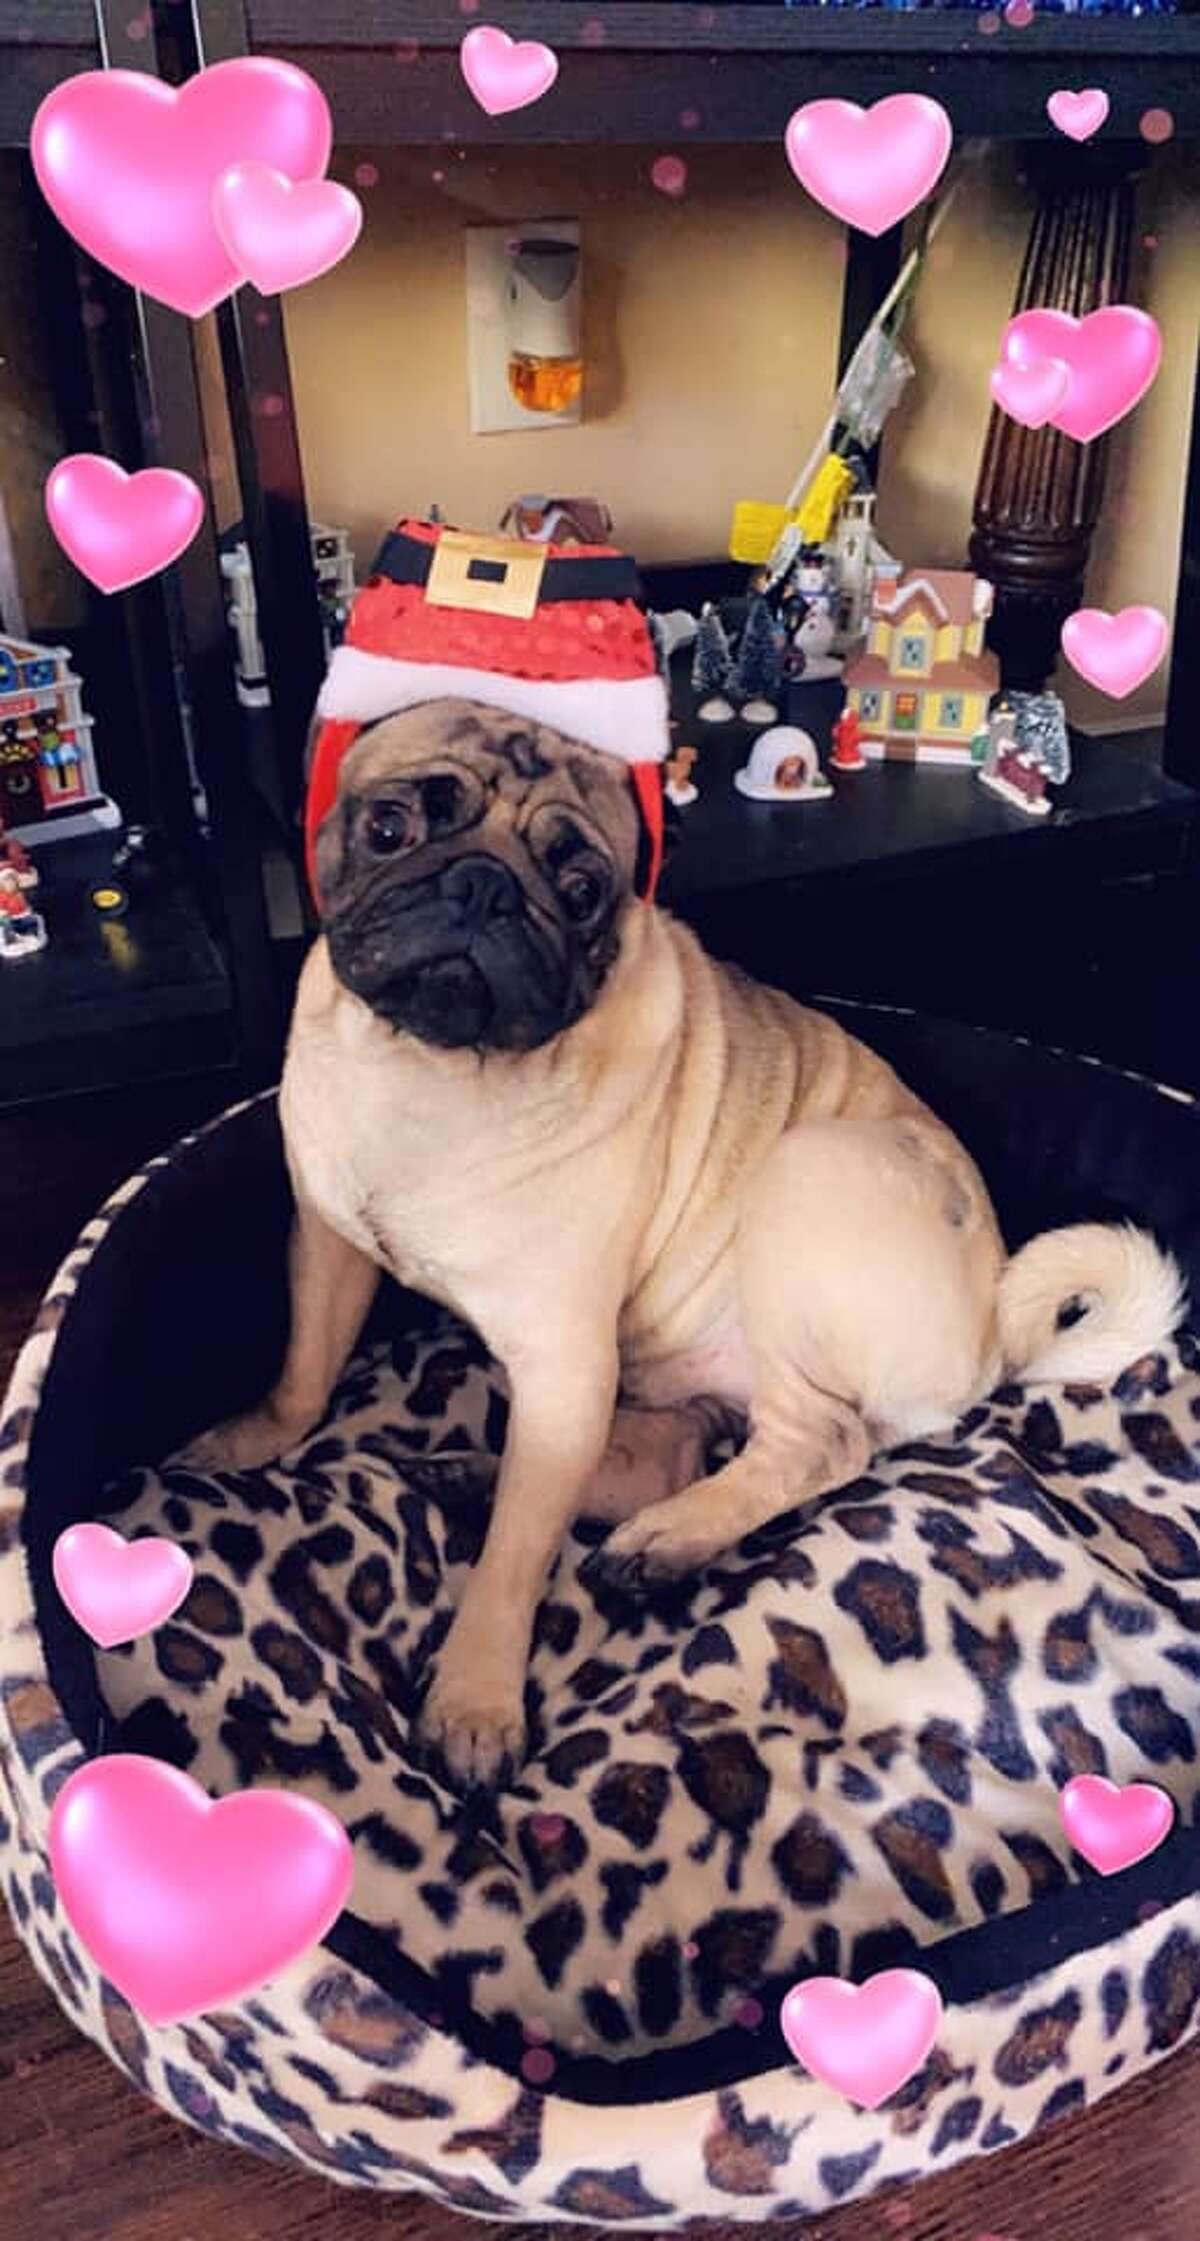 Sending you puppy love this holiday season.